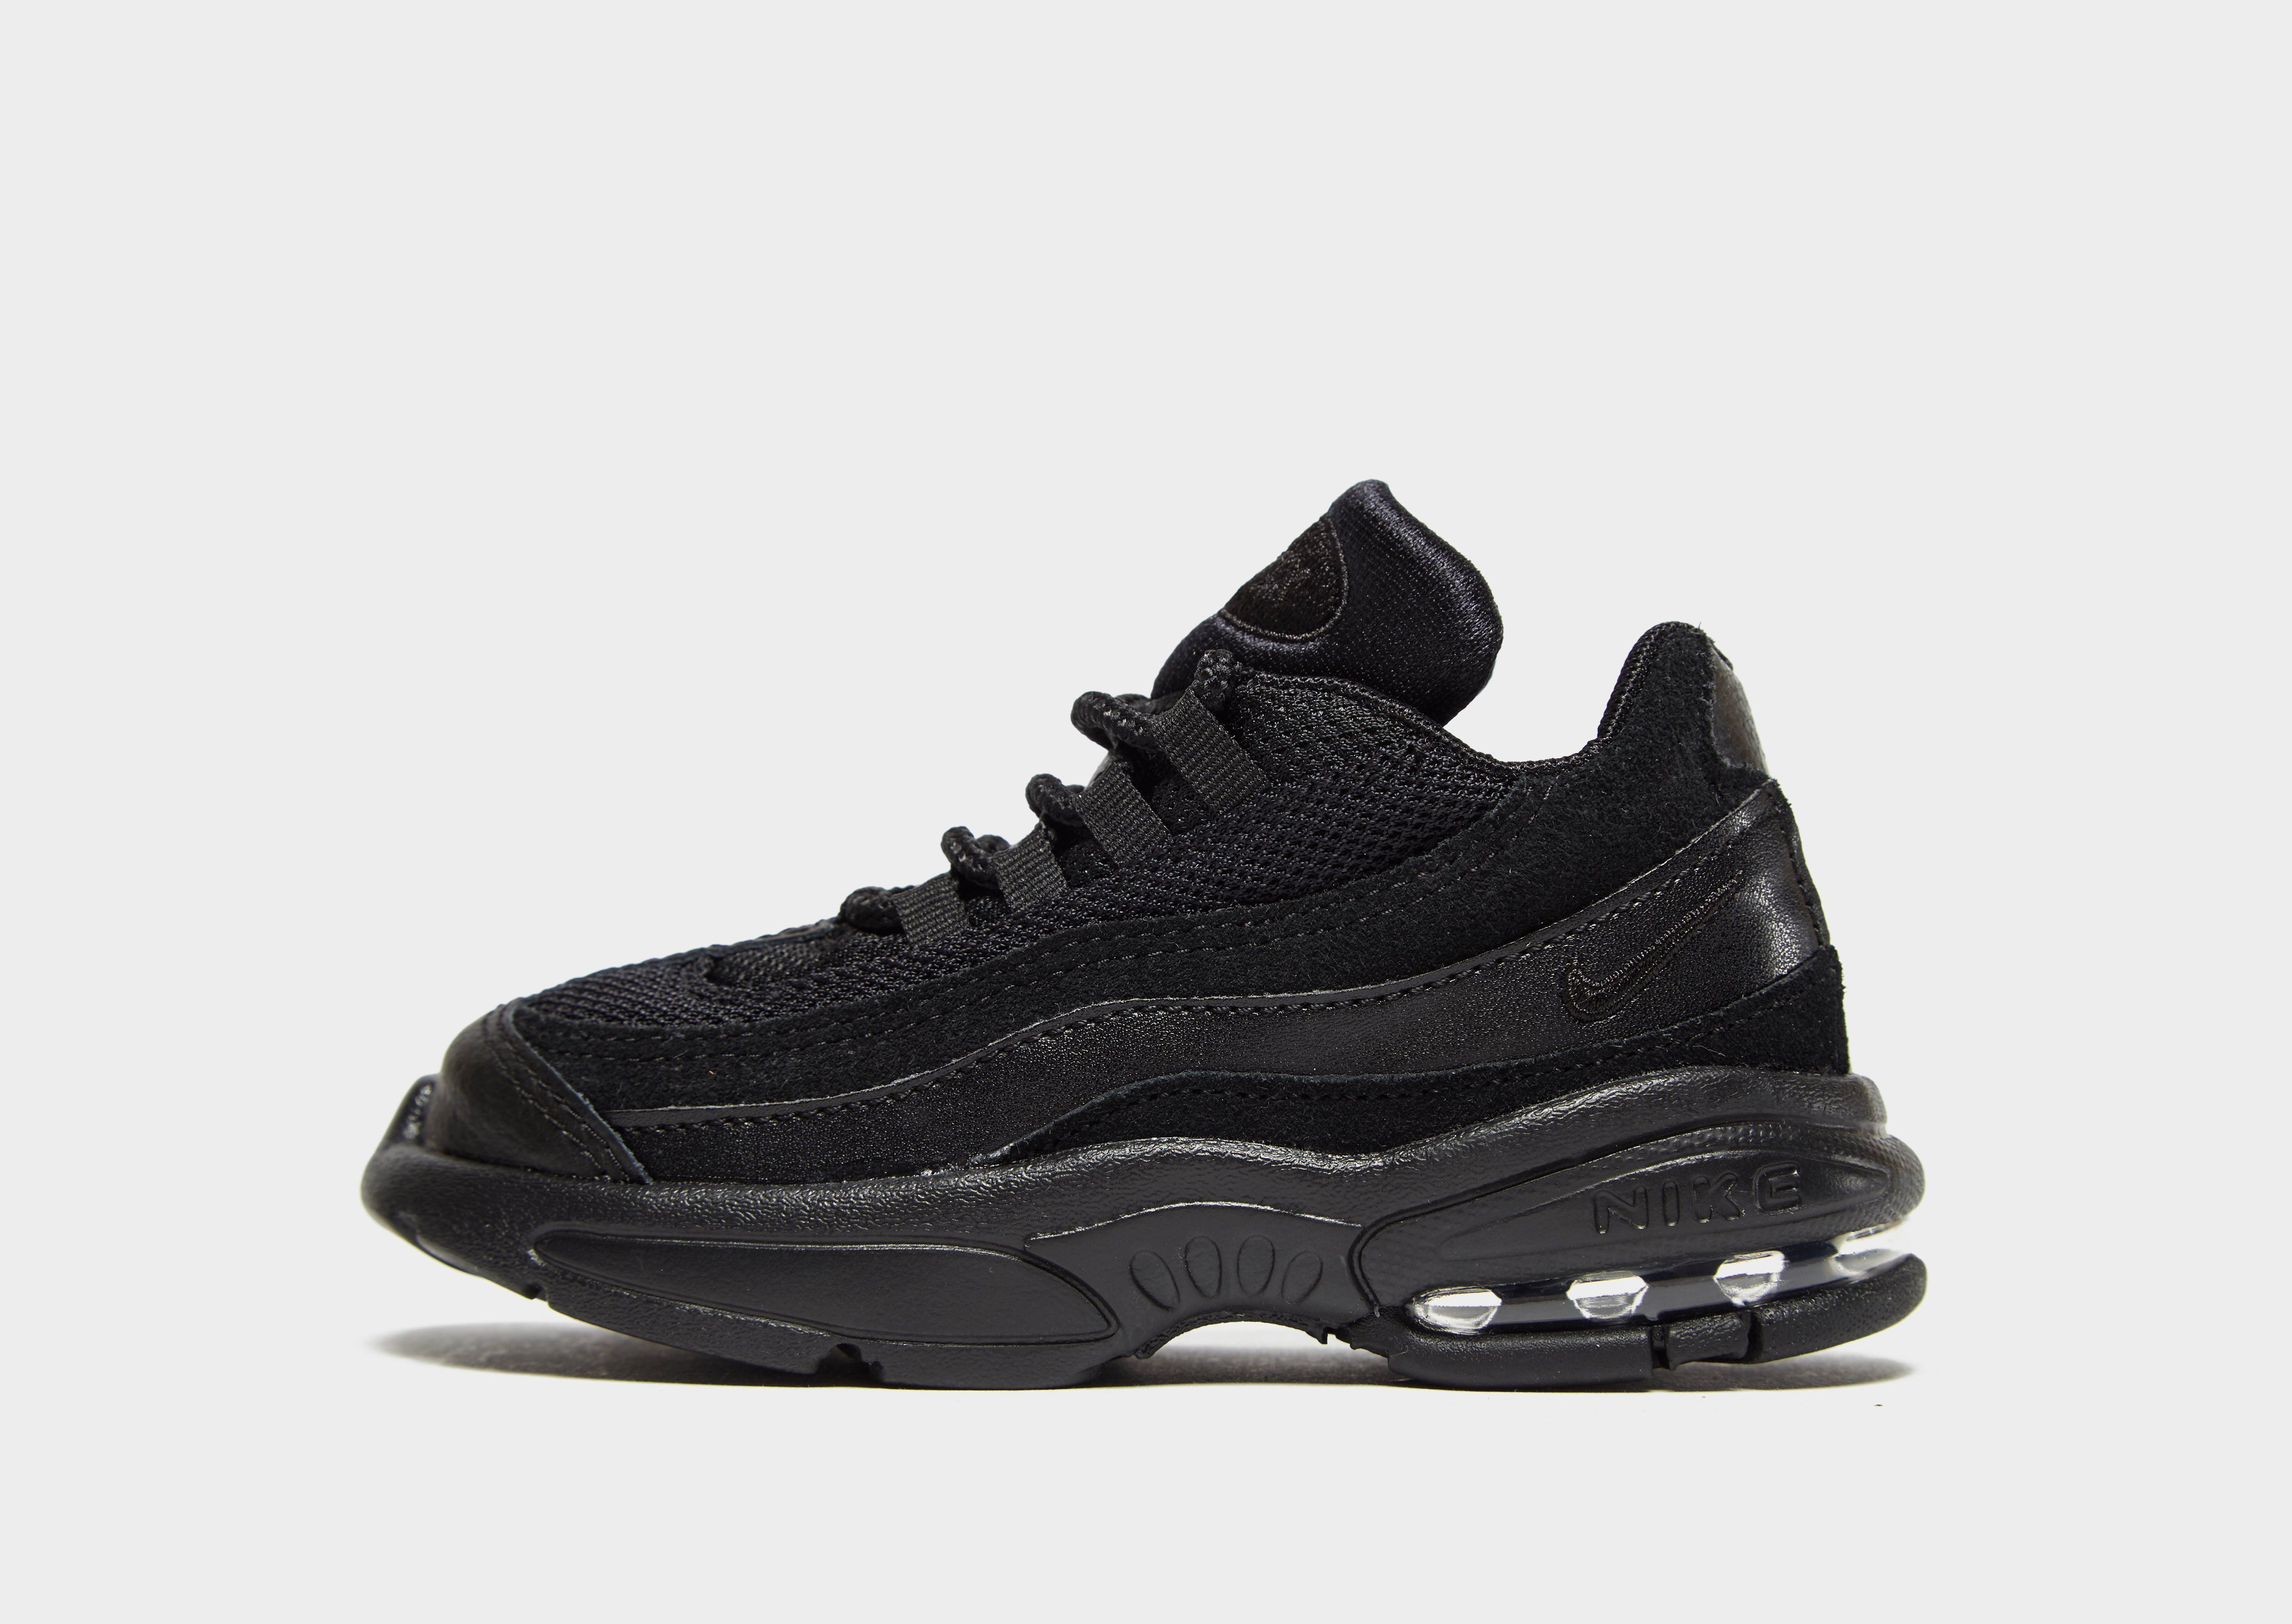 new product ebf8f 80565 Nike Air Max 95 Baby & Toddler Shoe | JD Sports